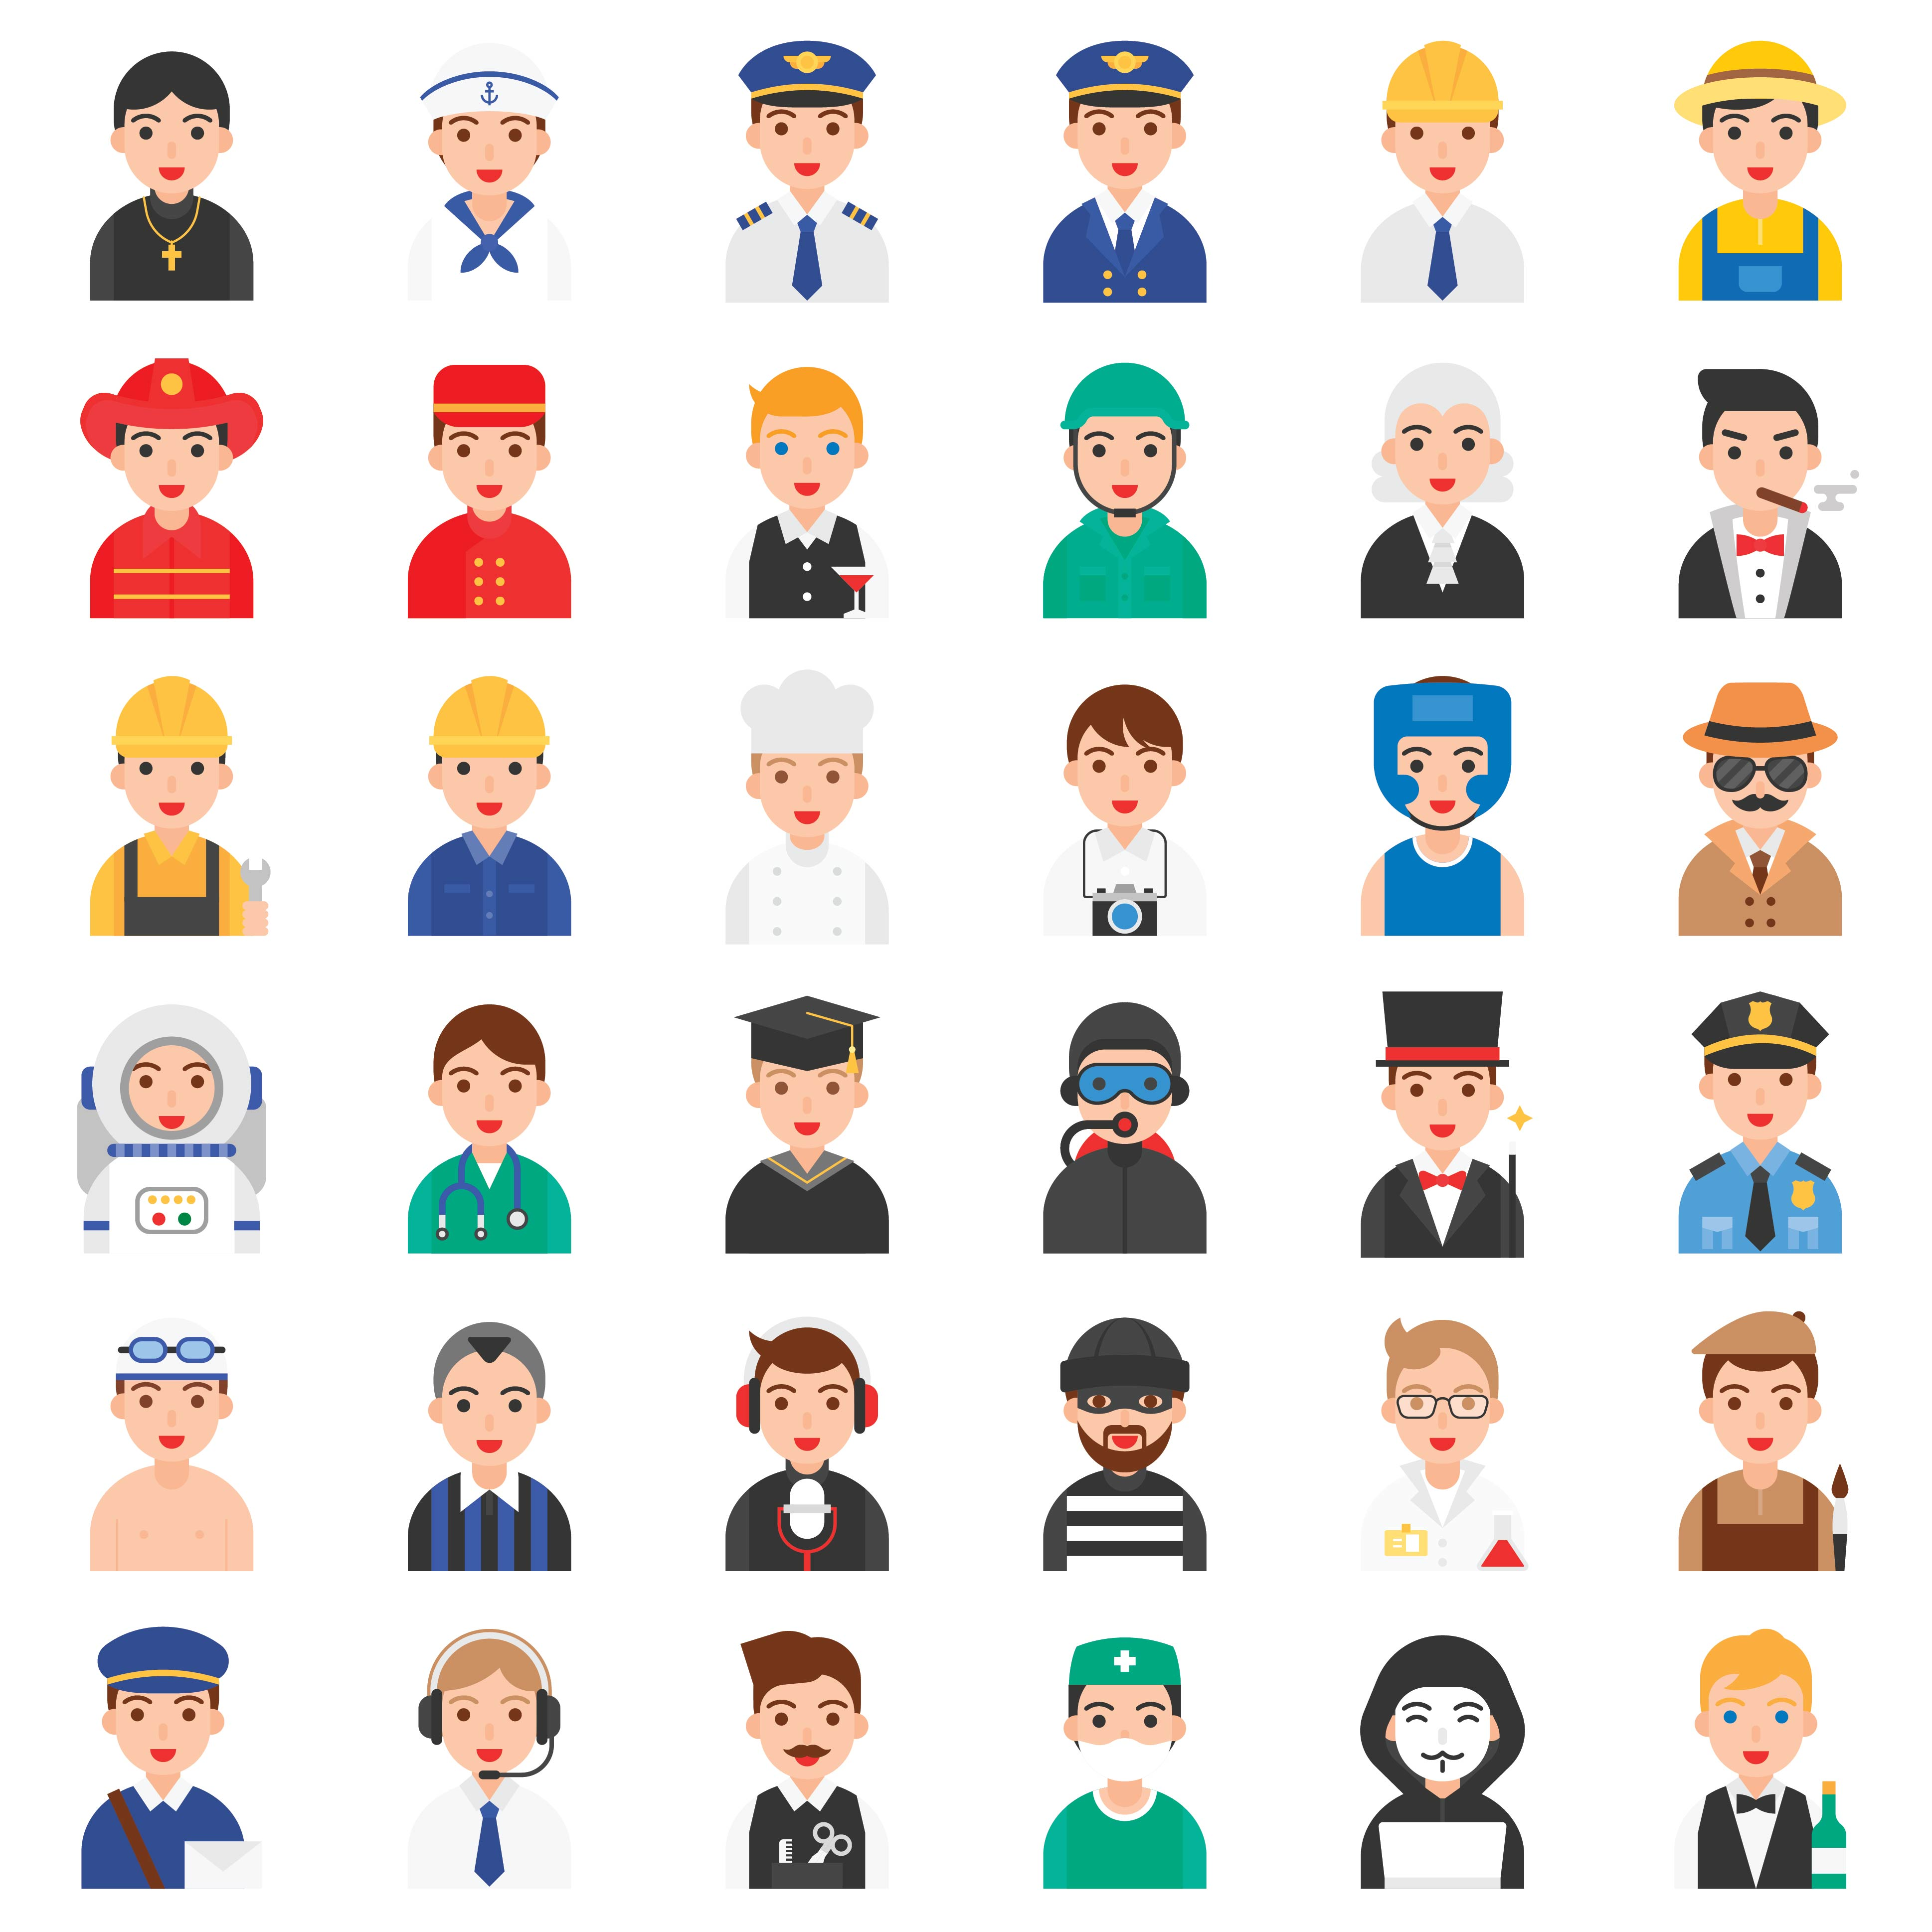 Male job related icon set